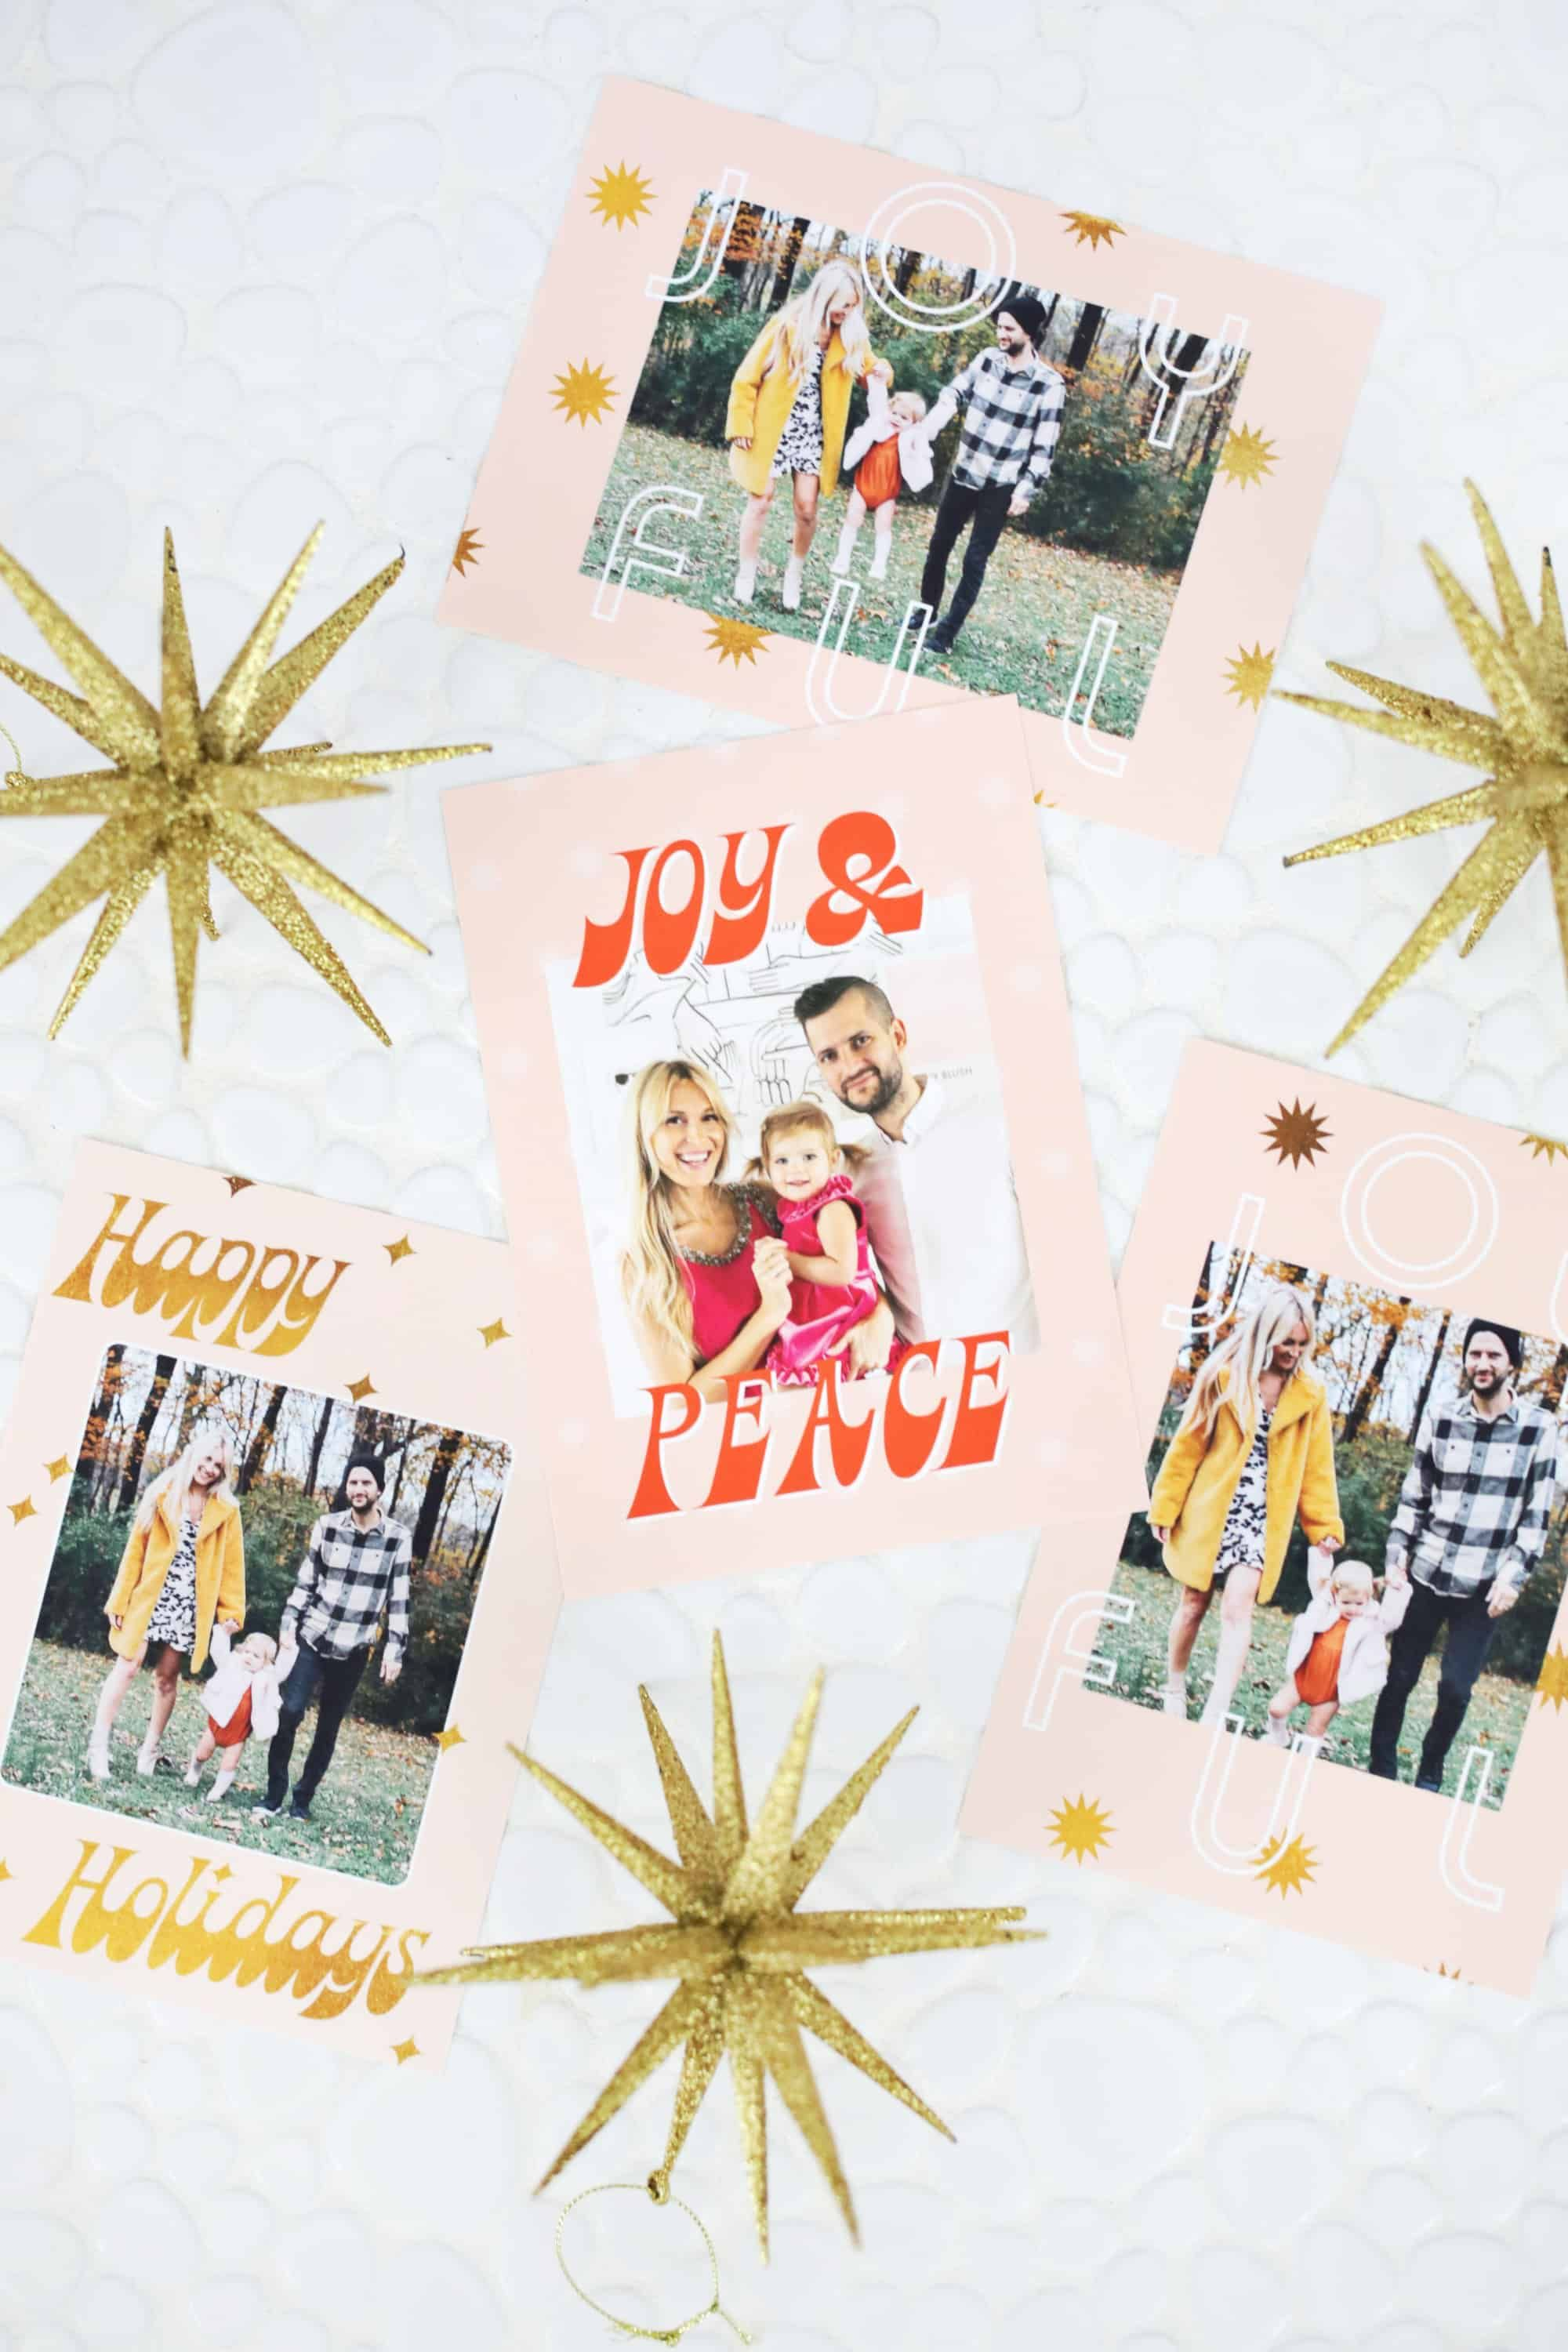 Print Your Own Holiday Cards Free Template Included